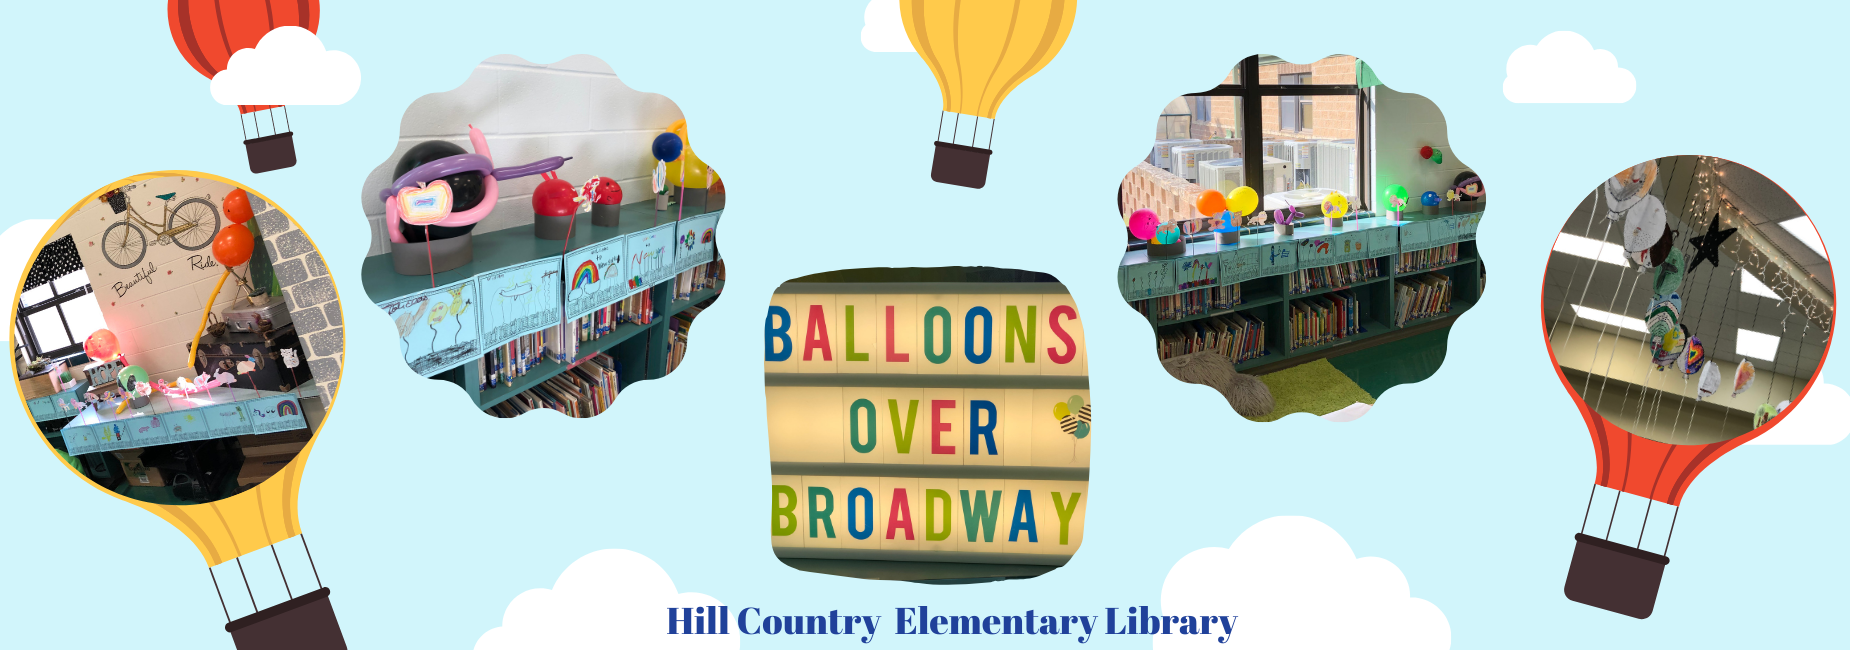 Balloons Over Broadway HCE